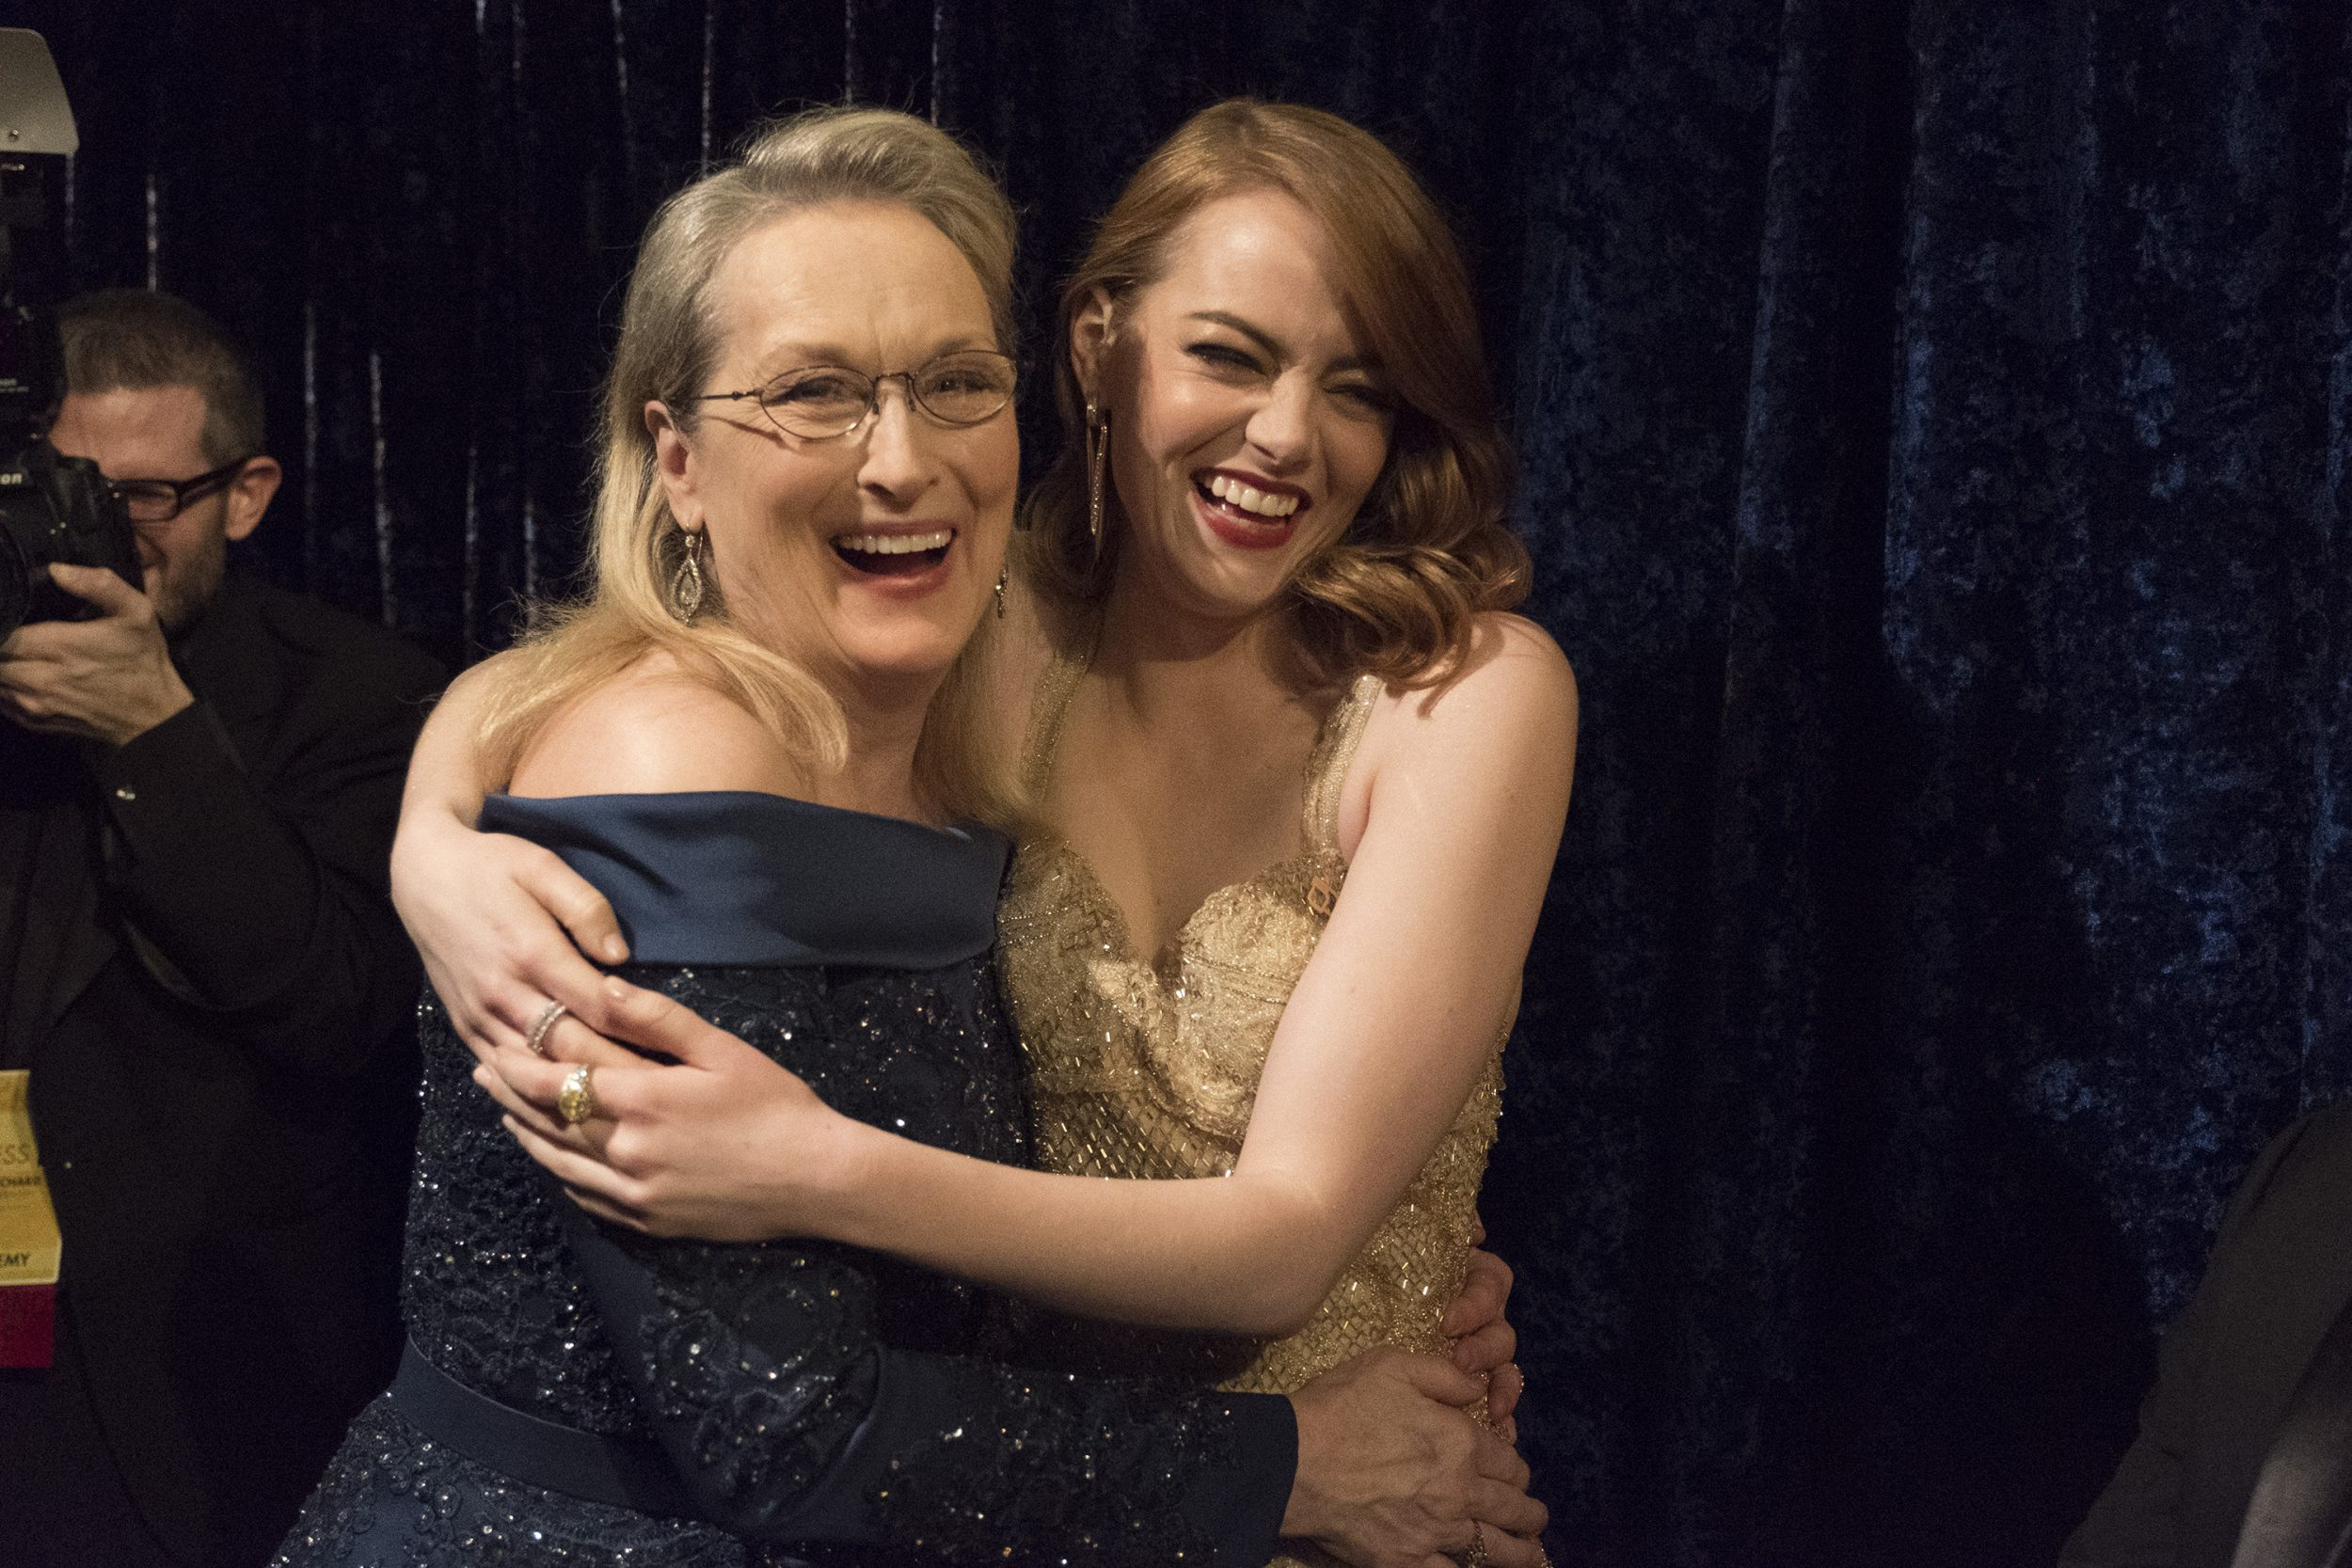 THE OSCARS(r) - The 89th Oscars(r)  broadcasts live on Oscar(r) SUNDAY, FEBRUARY 26, 2017, on the ABC Television Network. (ABC/Adam Rose) MERYL STREEP, EMMA STONE